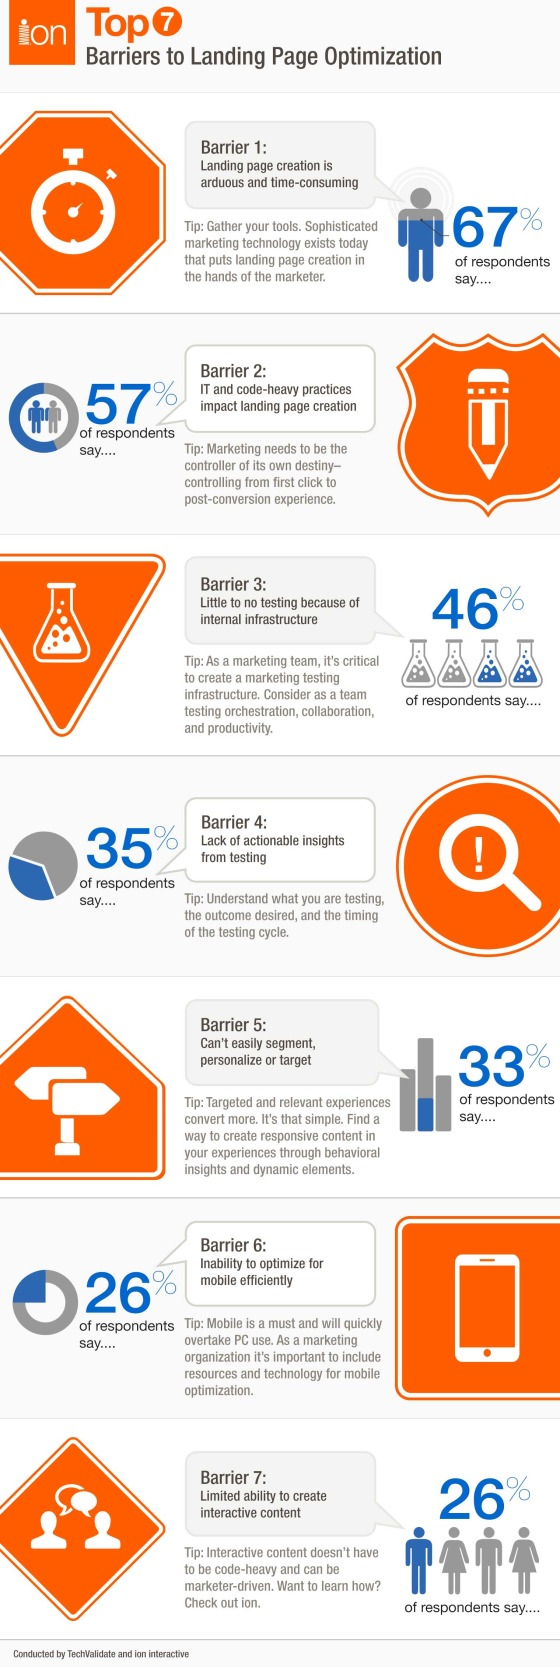 Barriers to landing page optimization infographic